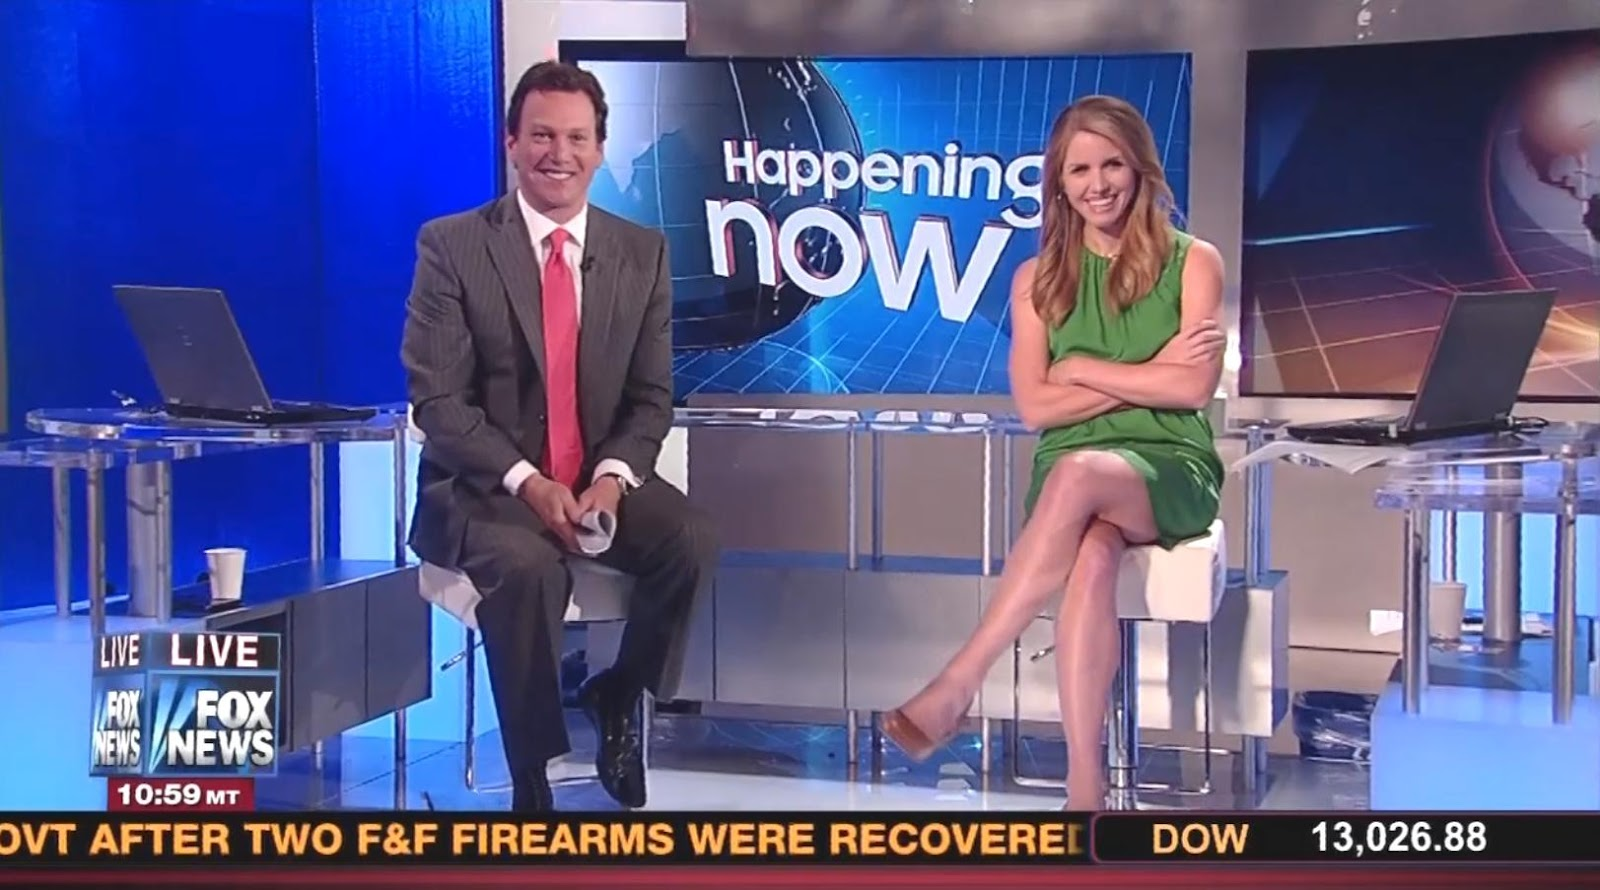 Jenna Lee From Fox News Channel Flaunting Legs and Thighs